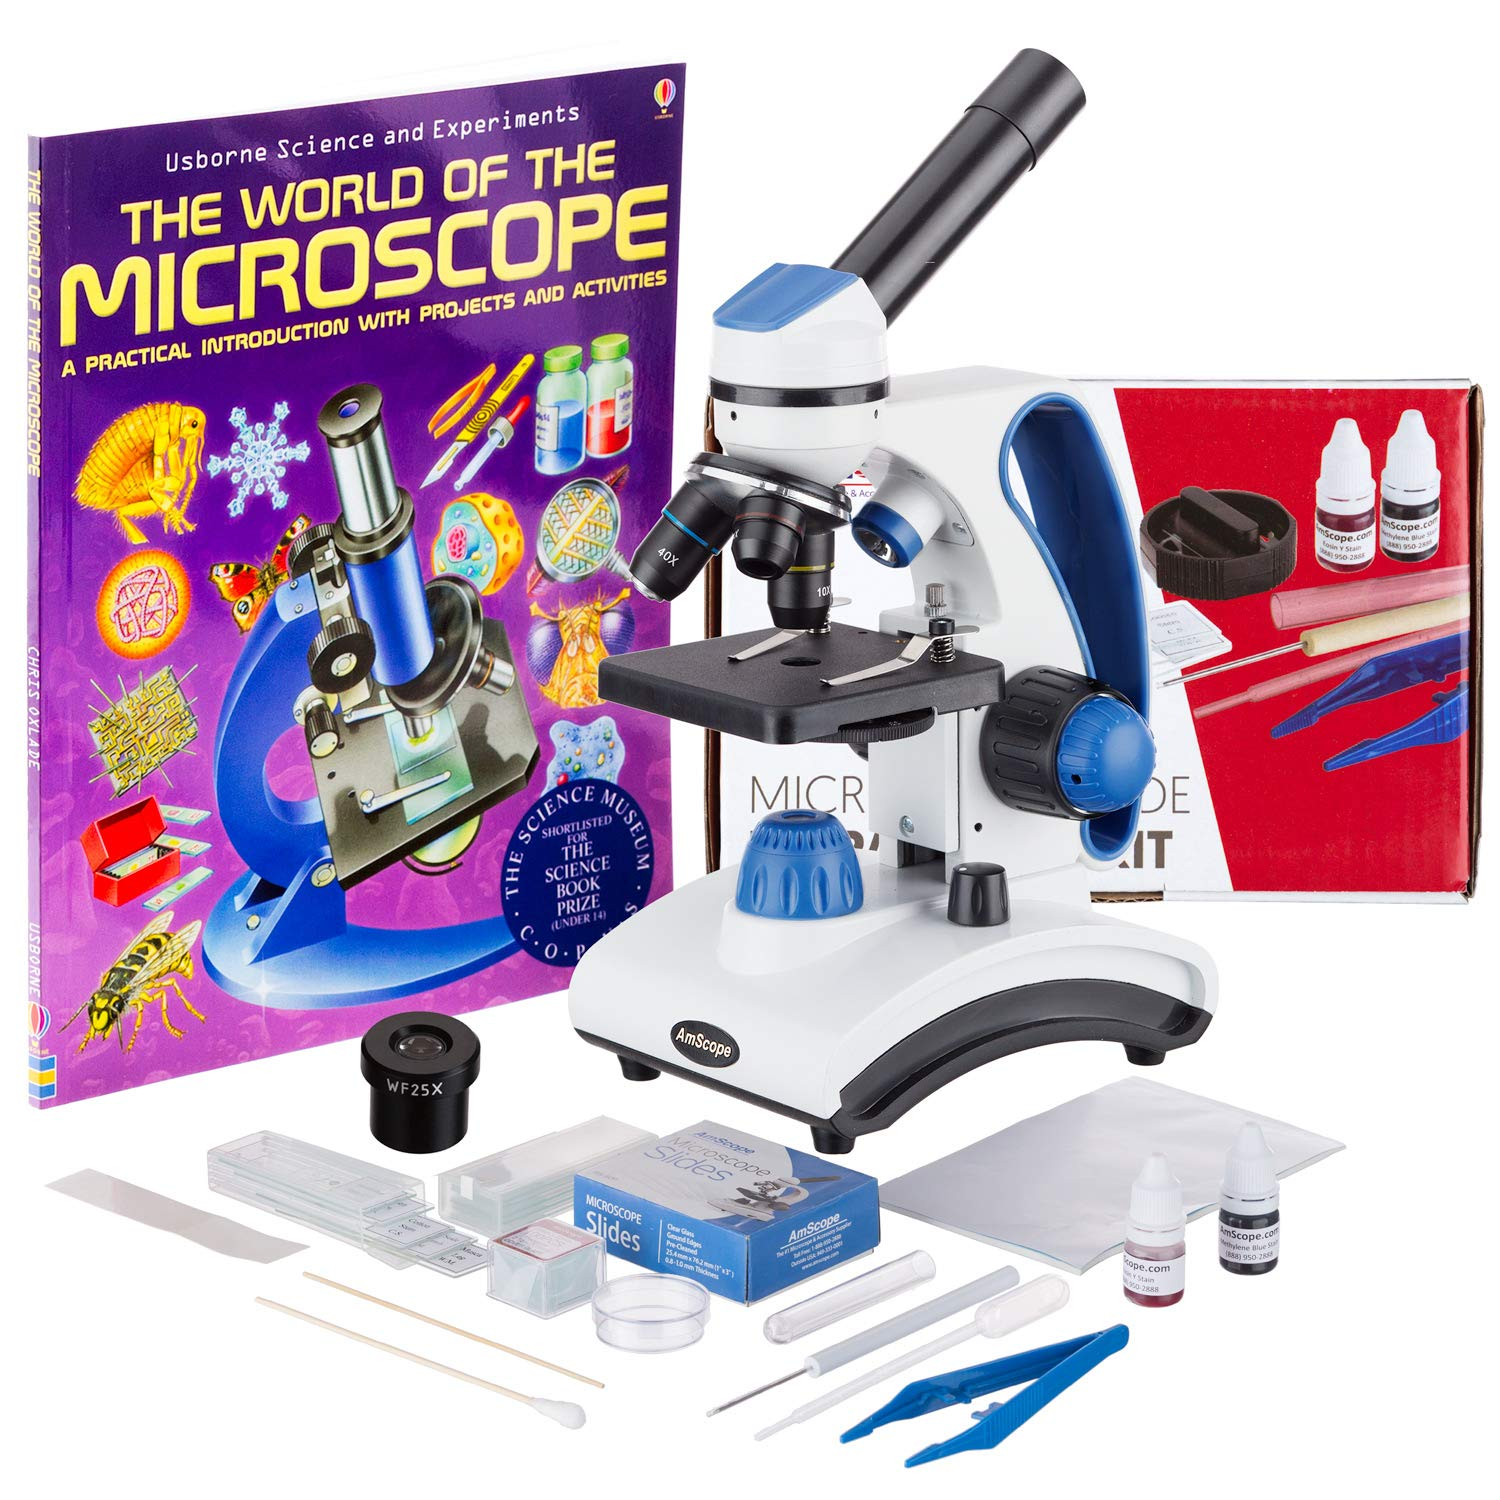 AmScope M162C-2L-WM-SP14-50P100S 40X-1000X Dual Light Glass Lens Metal Frame Student Microscope + Slides by AmScope